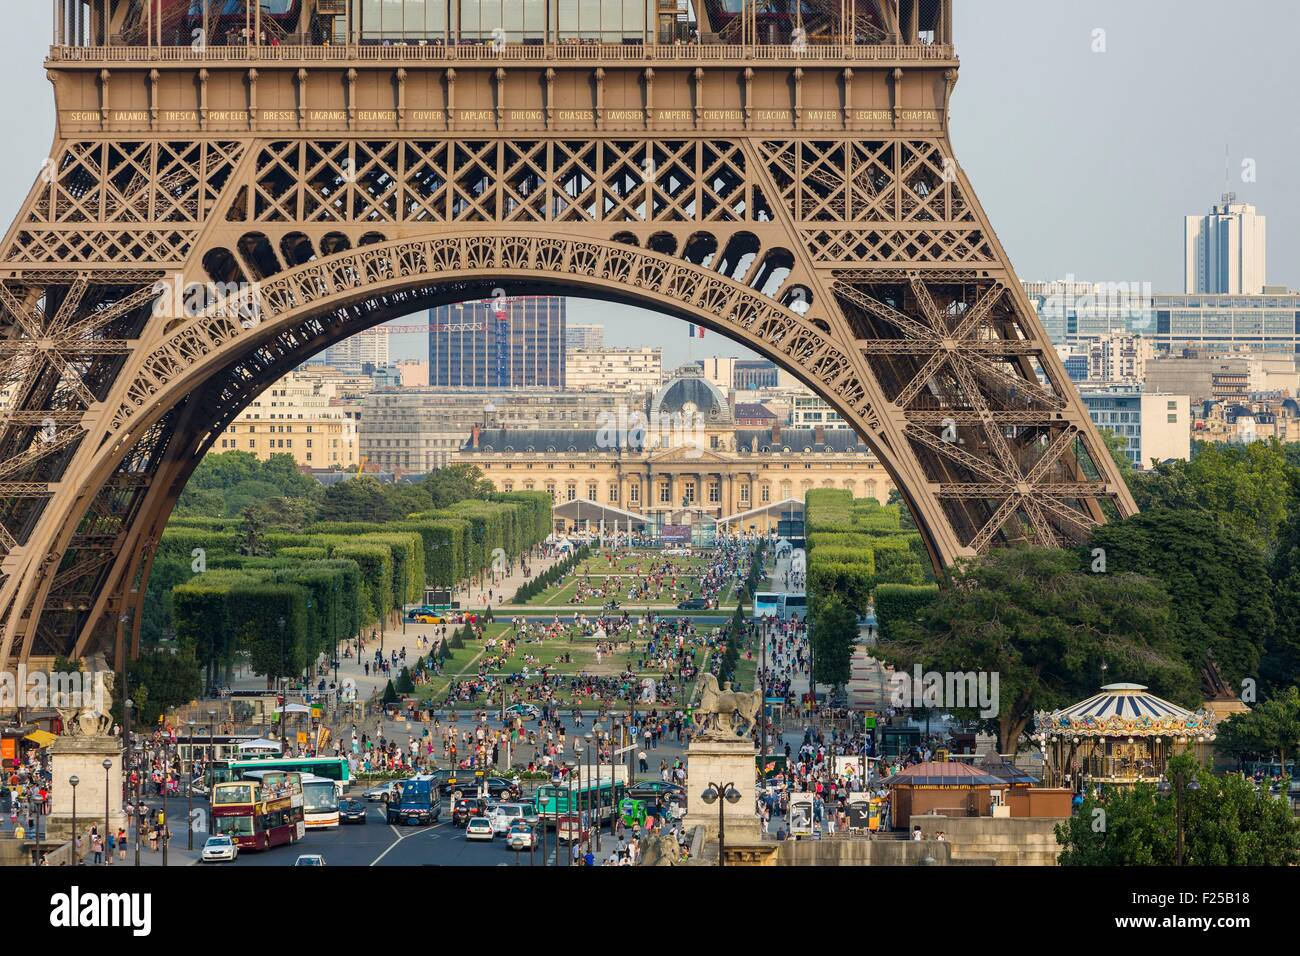 France, Paris, the Eiffel Tower and the Mars Champs - Stock Image